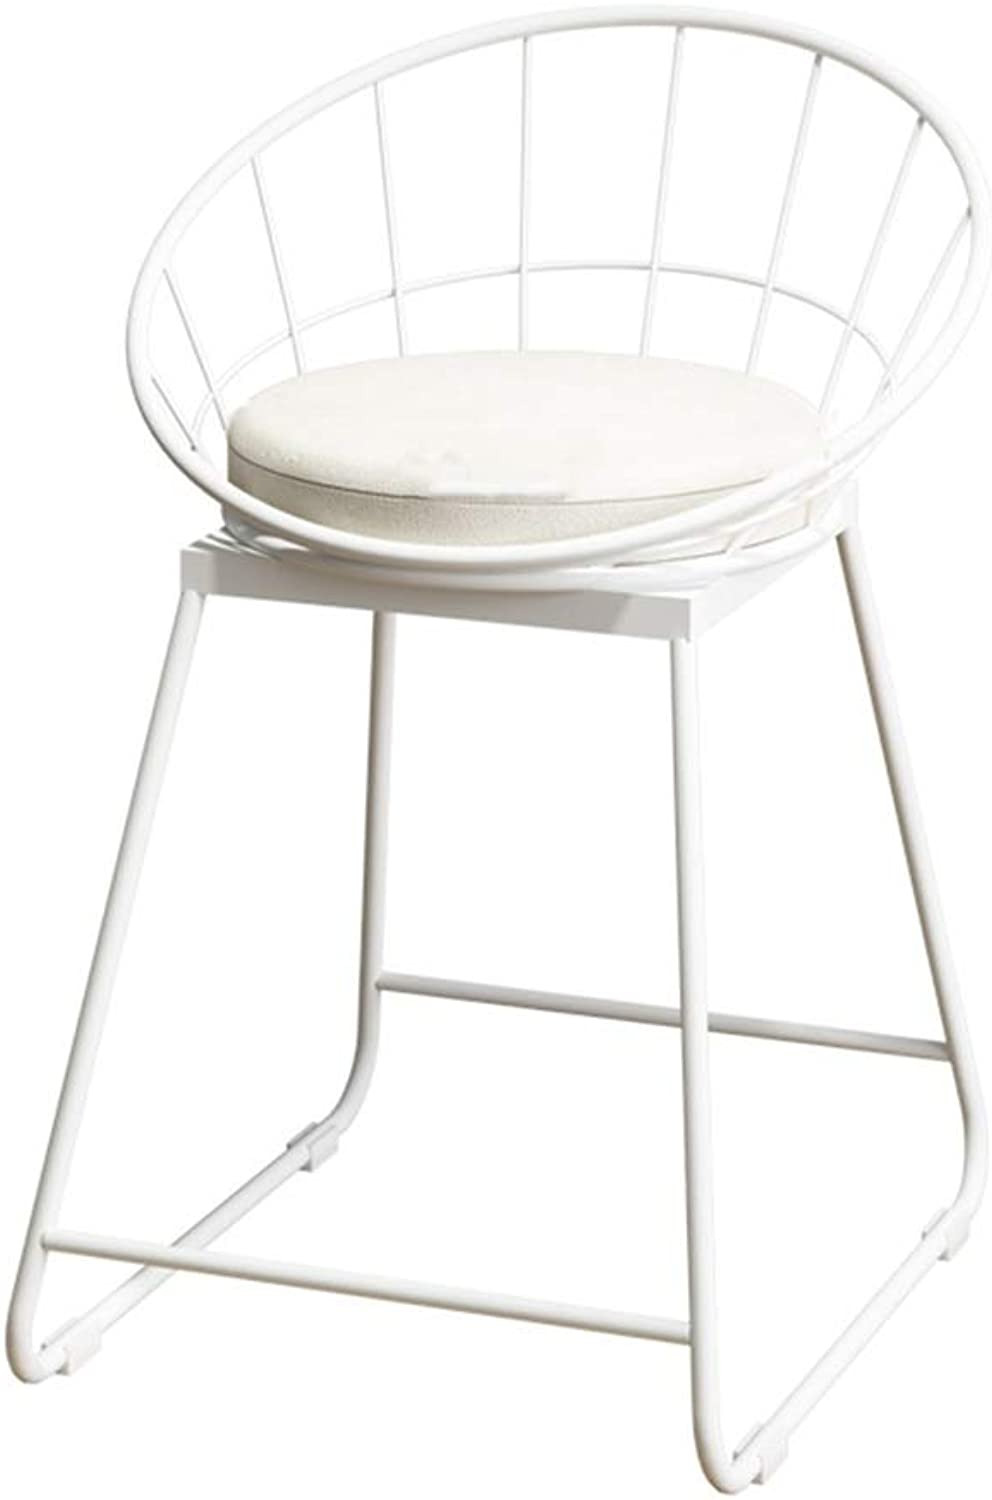 Barstools Chair Bar Stool Breakfast Chair High Chair and Cushion Seat Back Comfort Kitchen Breakfast Counter Greenhouse Bearing 150 Kg White (Size   42x44x45cm)